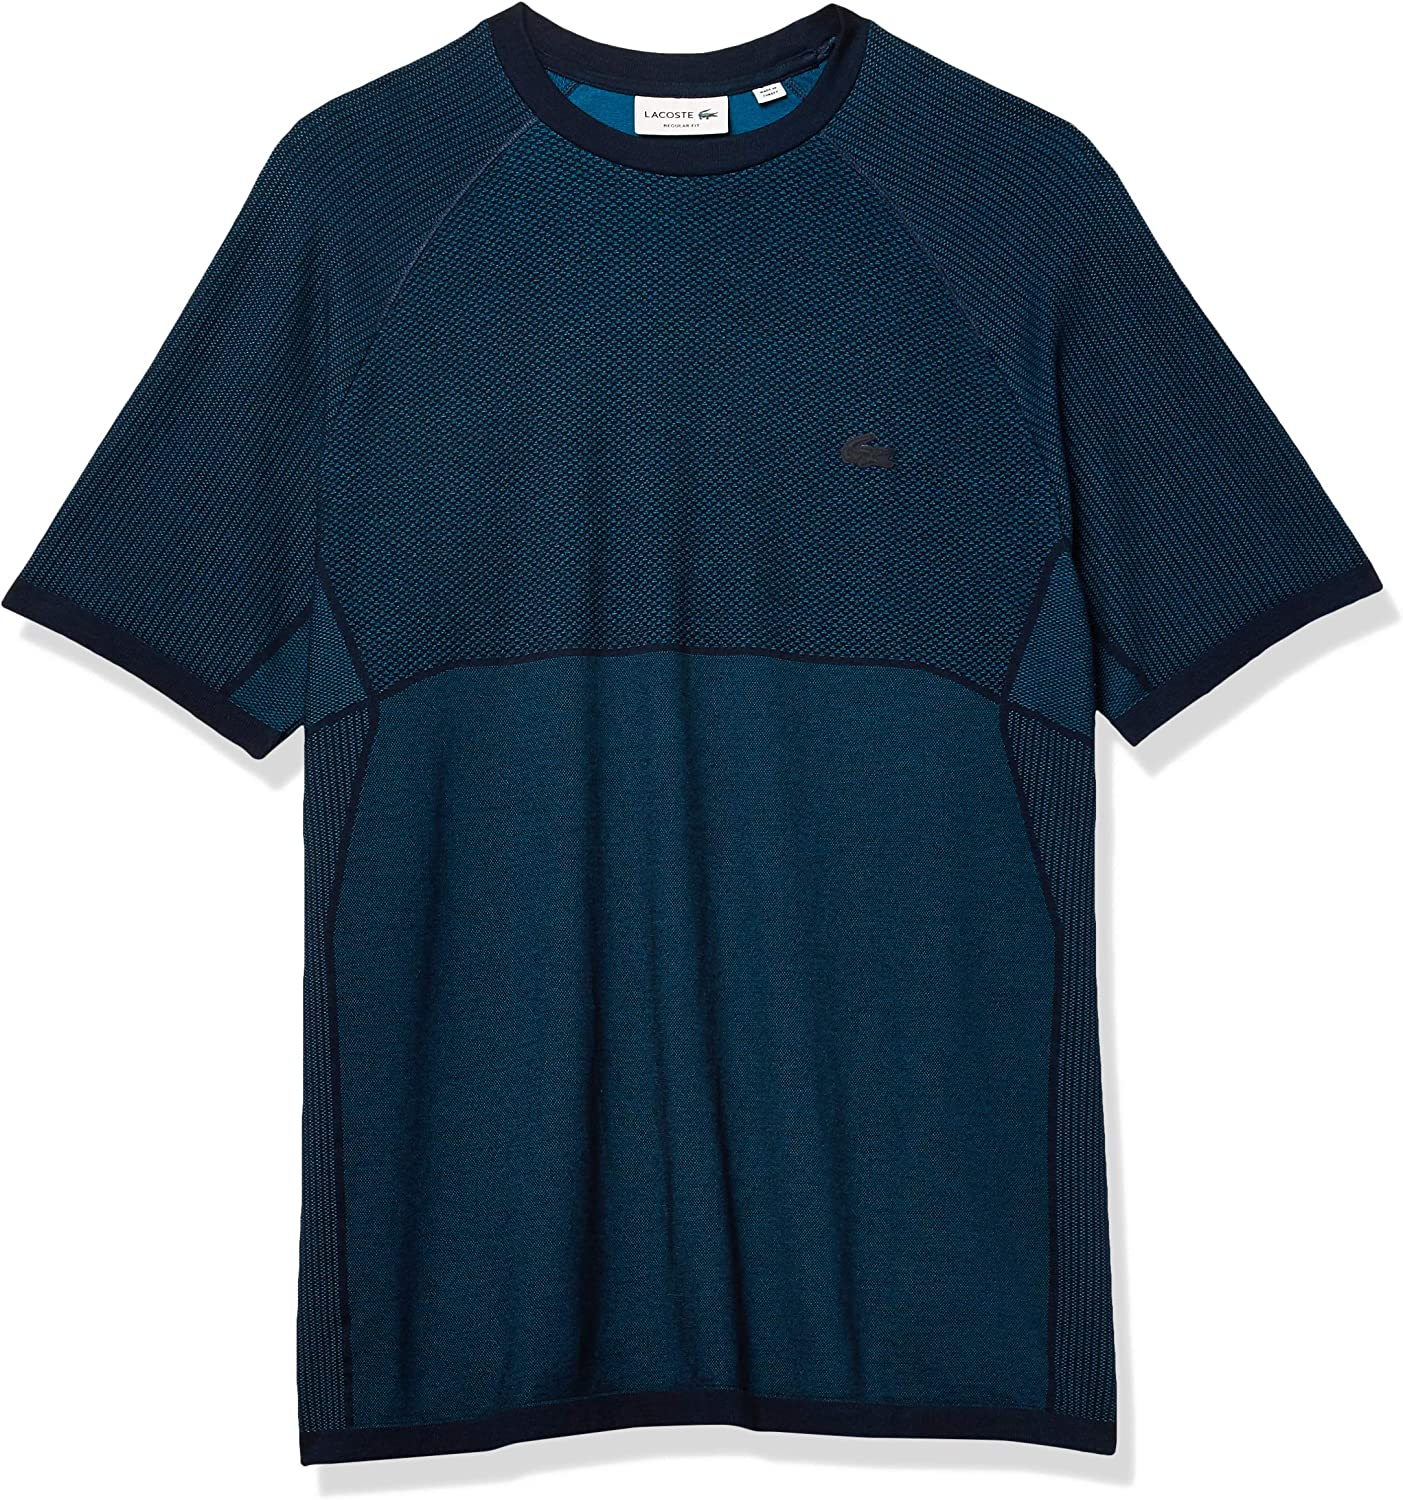 Lacoste Max 78% OFF Men's Motion Popular Short Sleeve Dry Quick Colorblock T-Shirt